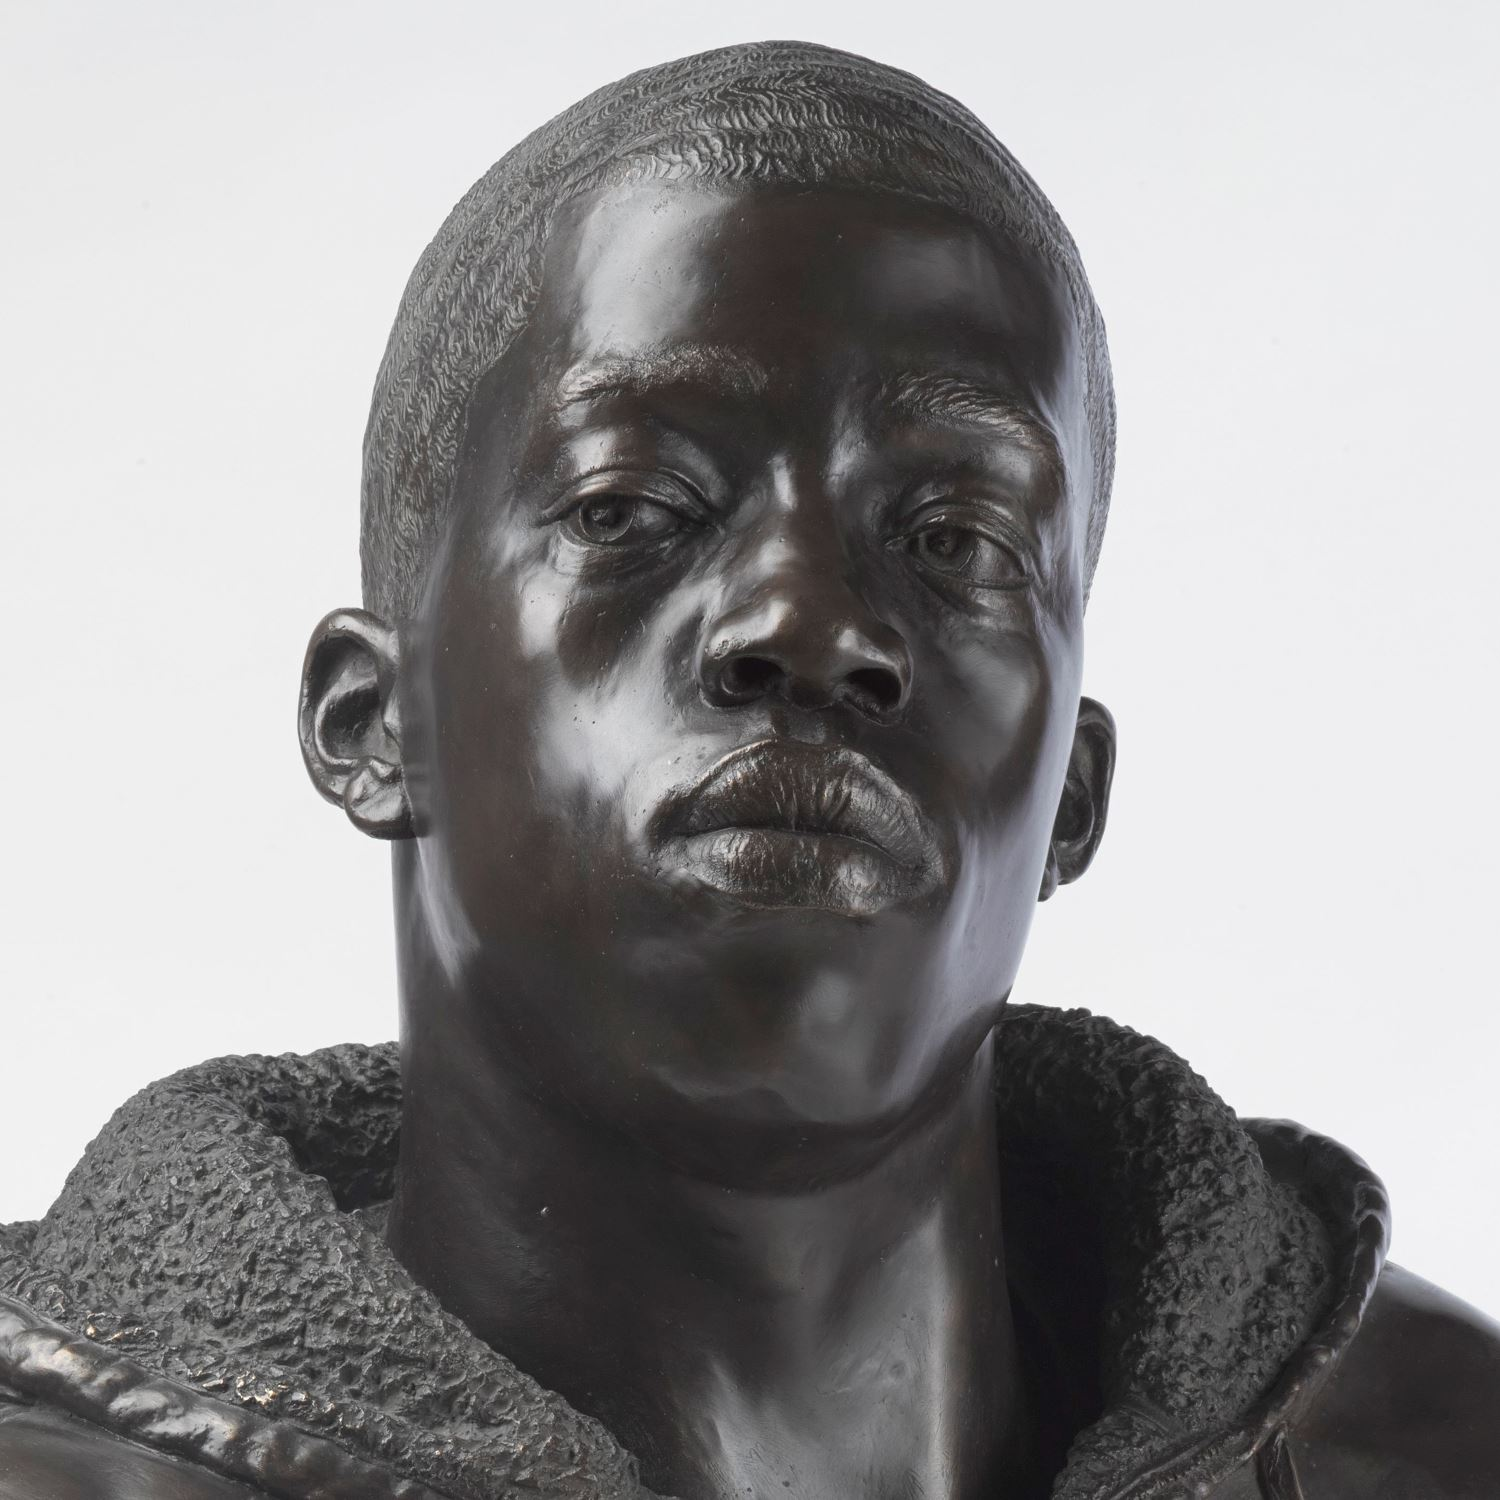 <p>Kehinde Wiley (American, b. 1977). <em>Houdon Paul-Louis</em>, 2011. Bronze with polished stone base, 34 &times; 26 &times; 19 in. (86.4 &times; 66 &times; 48.3 cm). Brooklyn Museum; Frank L. Babbott Fund and A. Augustus Healy Fund, 2012.51. &copy; Kehinde Wiley. (Photo: Sarah DeSantis, Brooklyn Museum)</p>